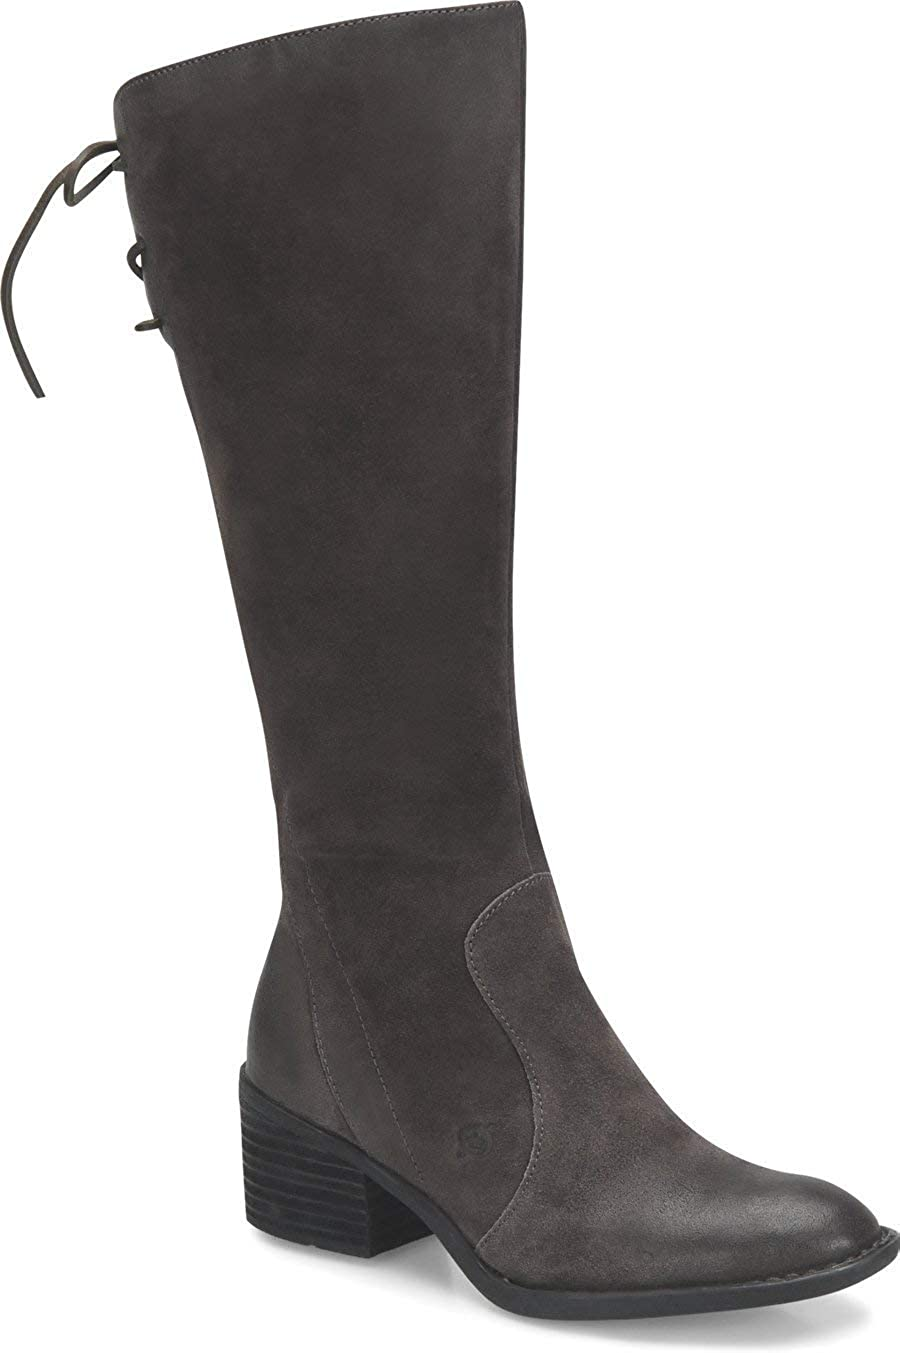 pictures Womens Brn Felicia Knee High Boot, Size 9 Regular Calf M - Black